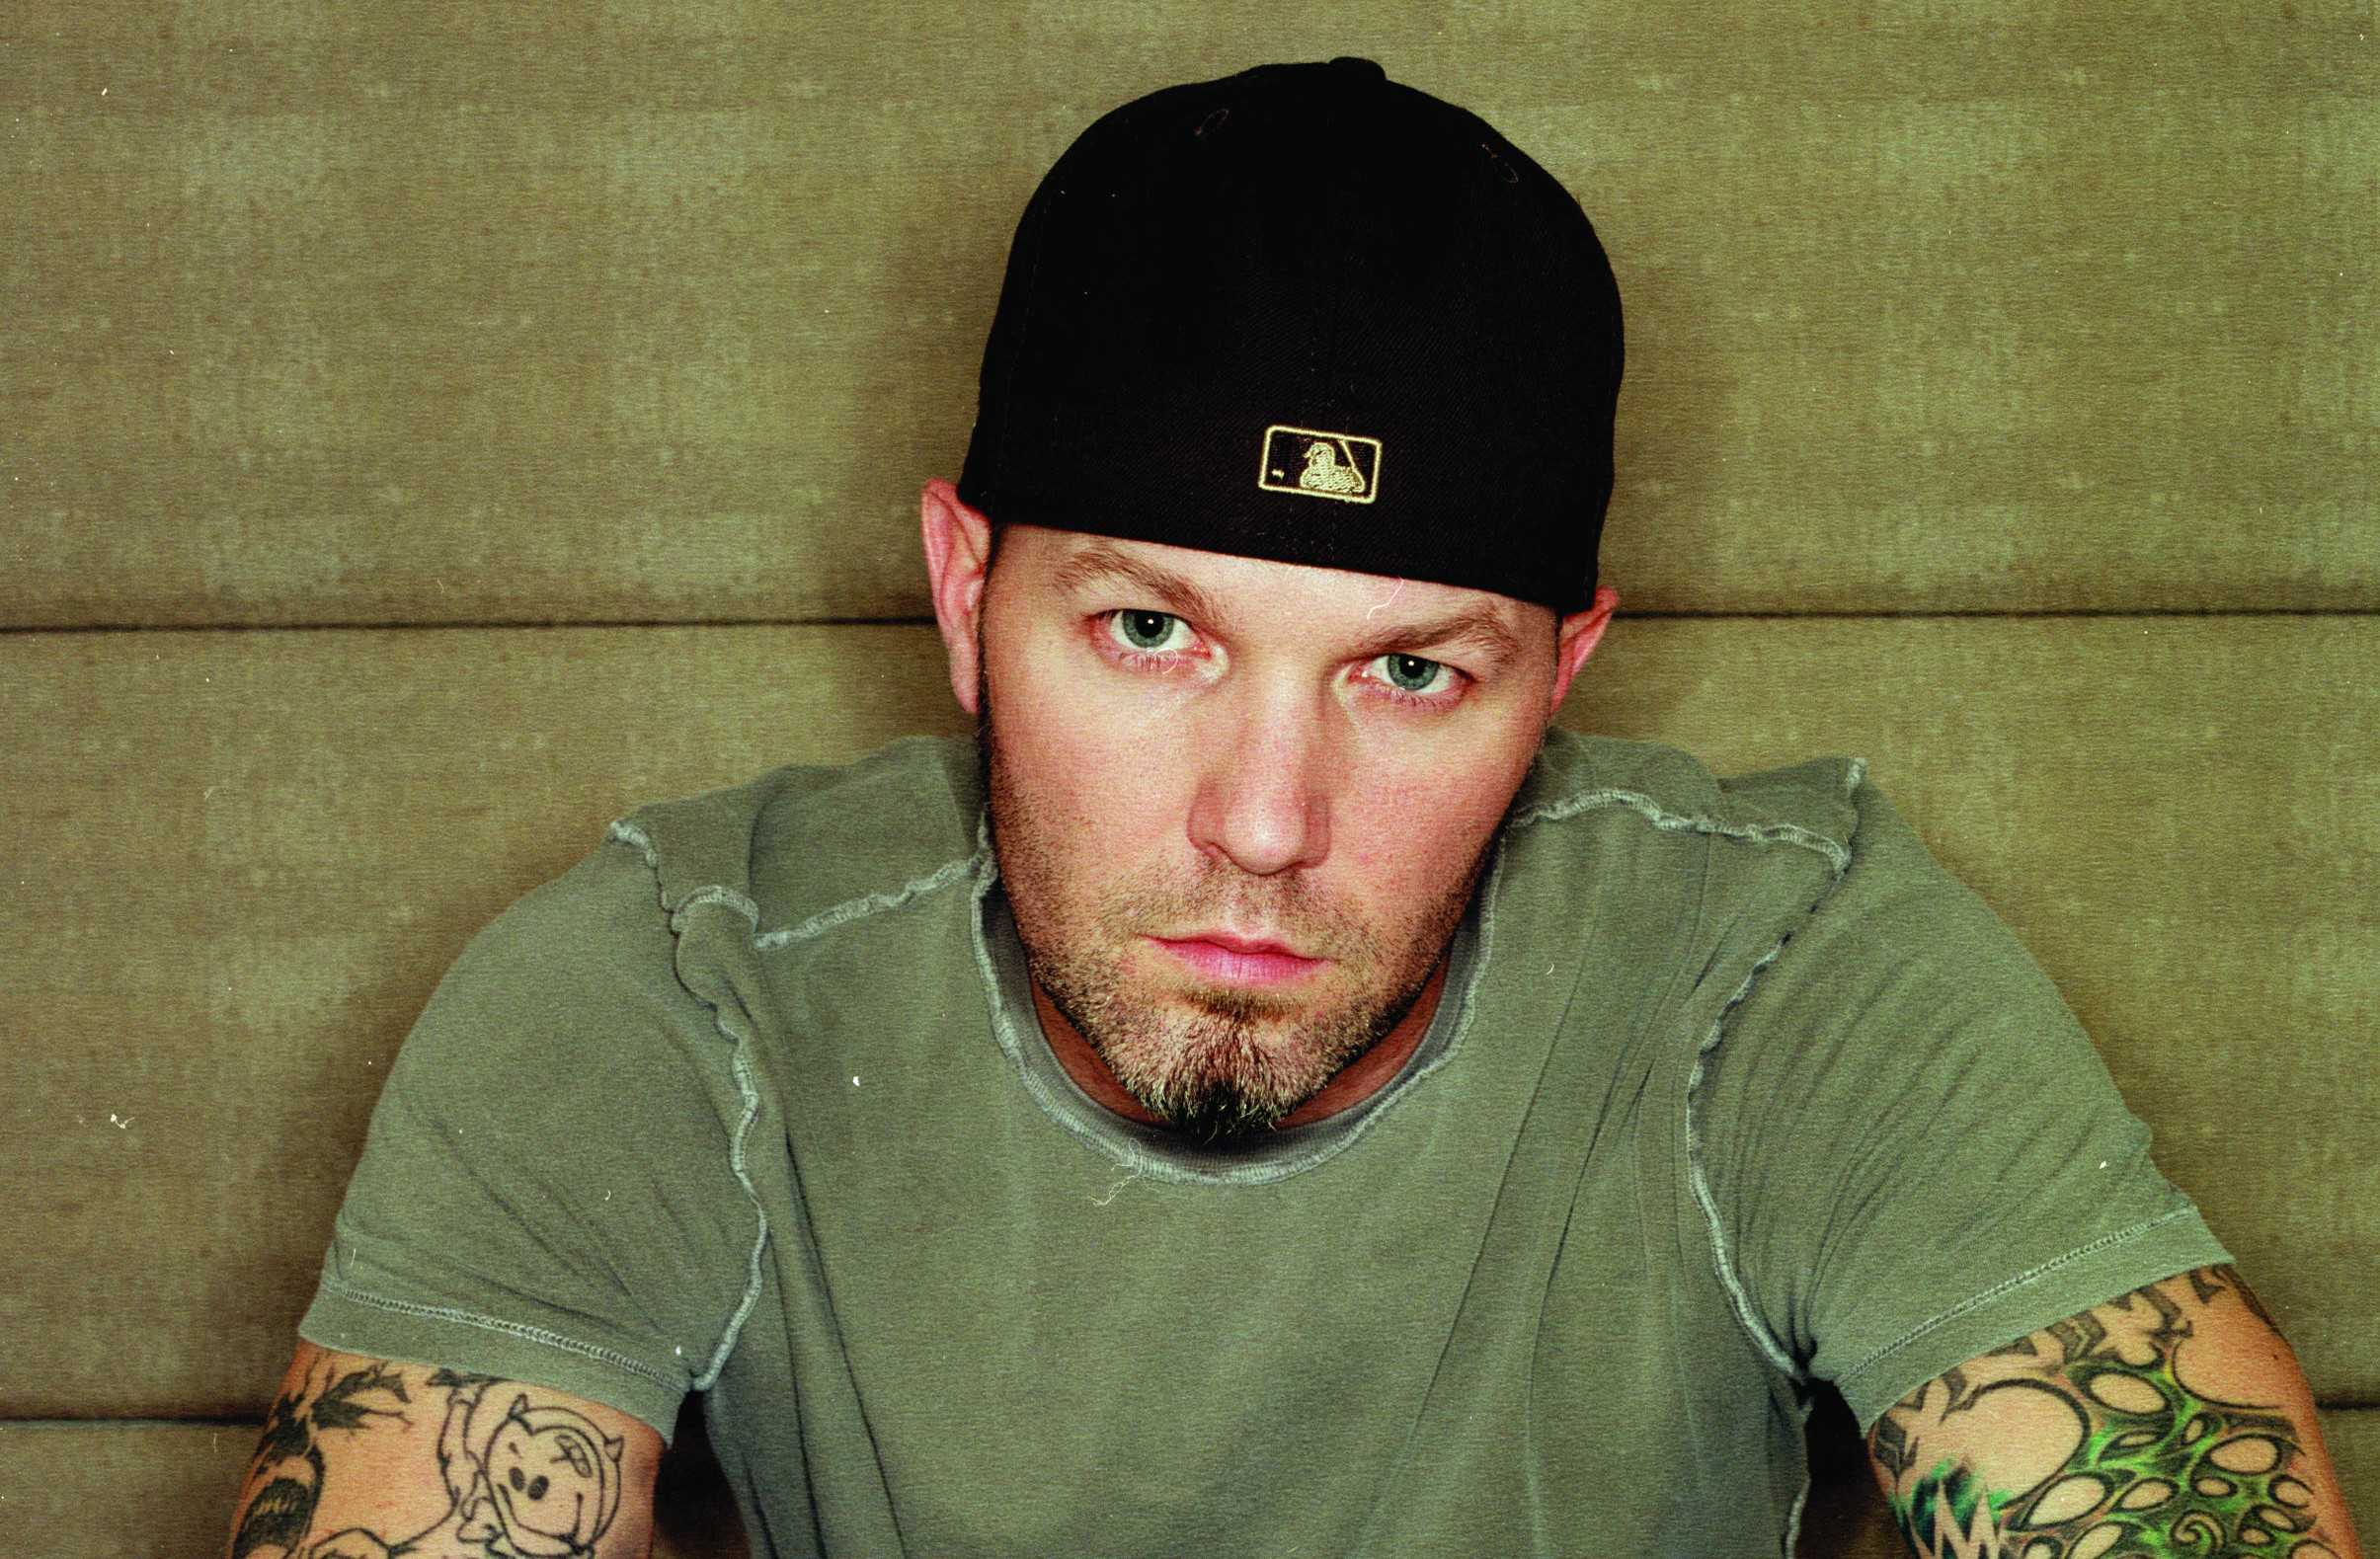 fred durst wiki photos ethnicity or